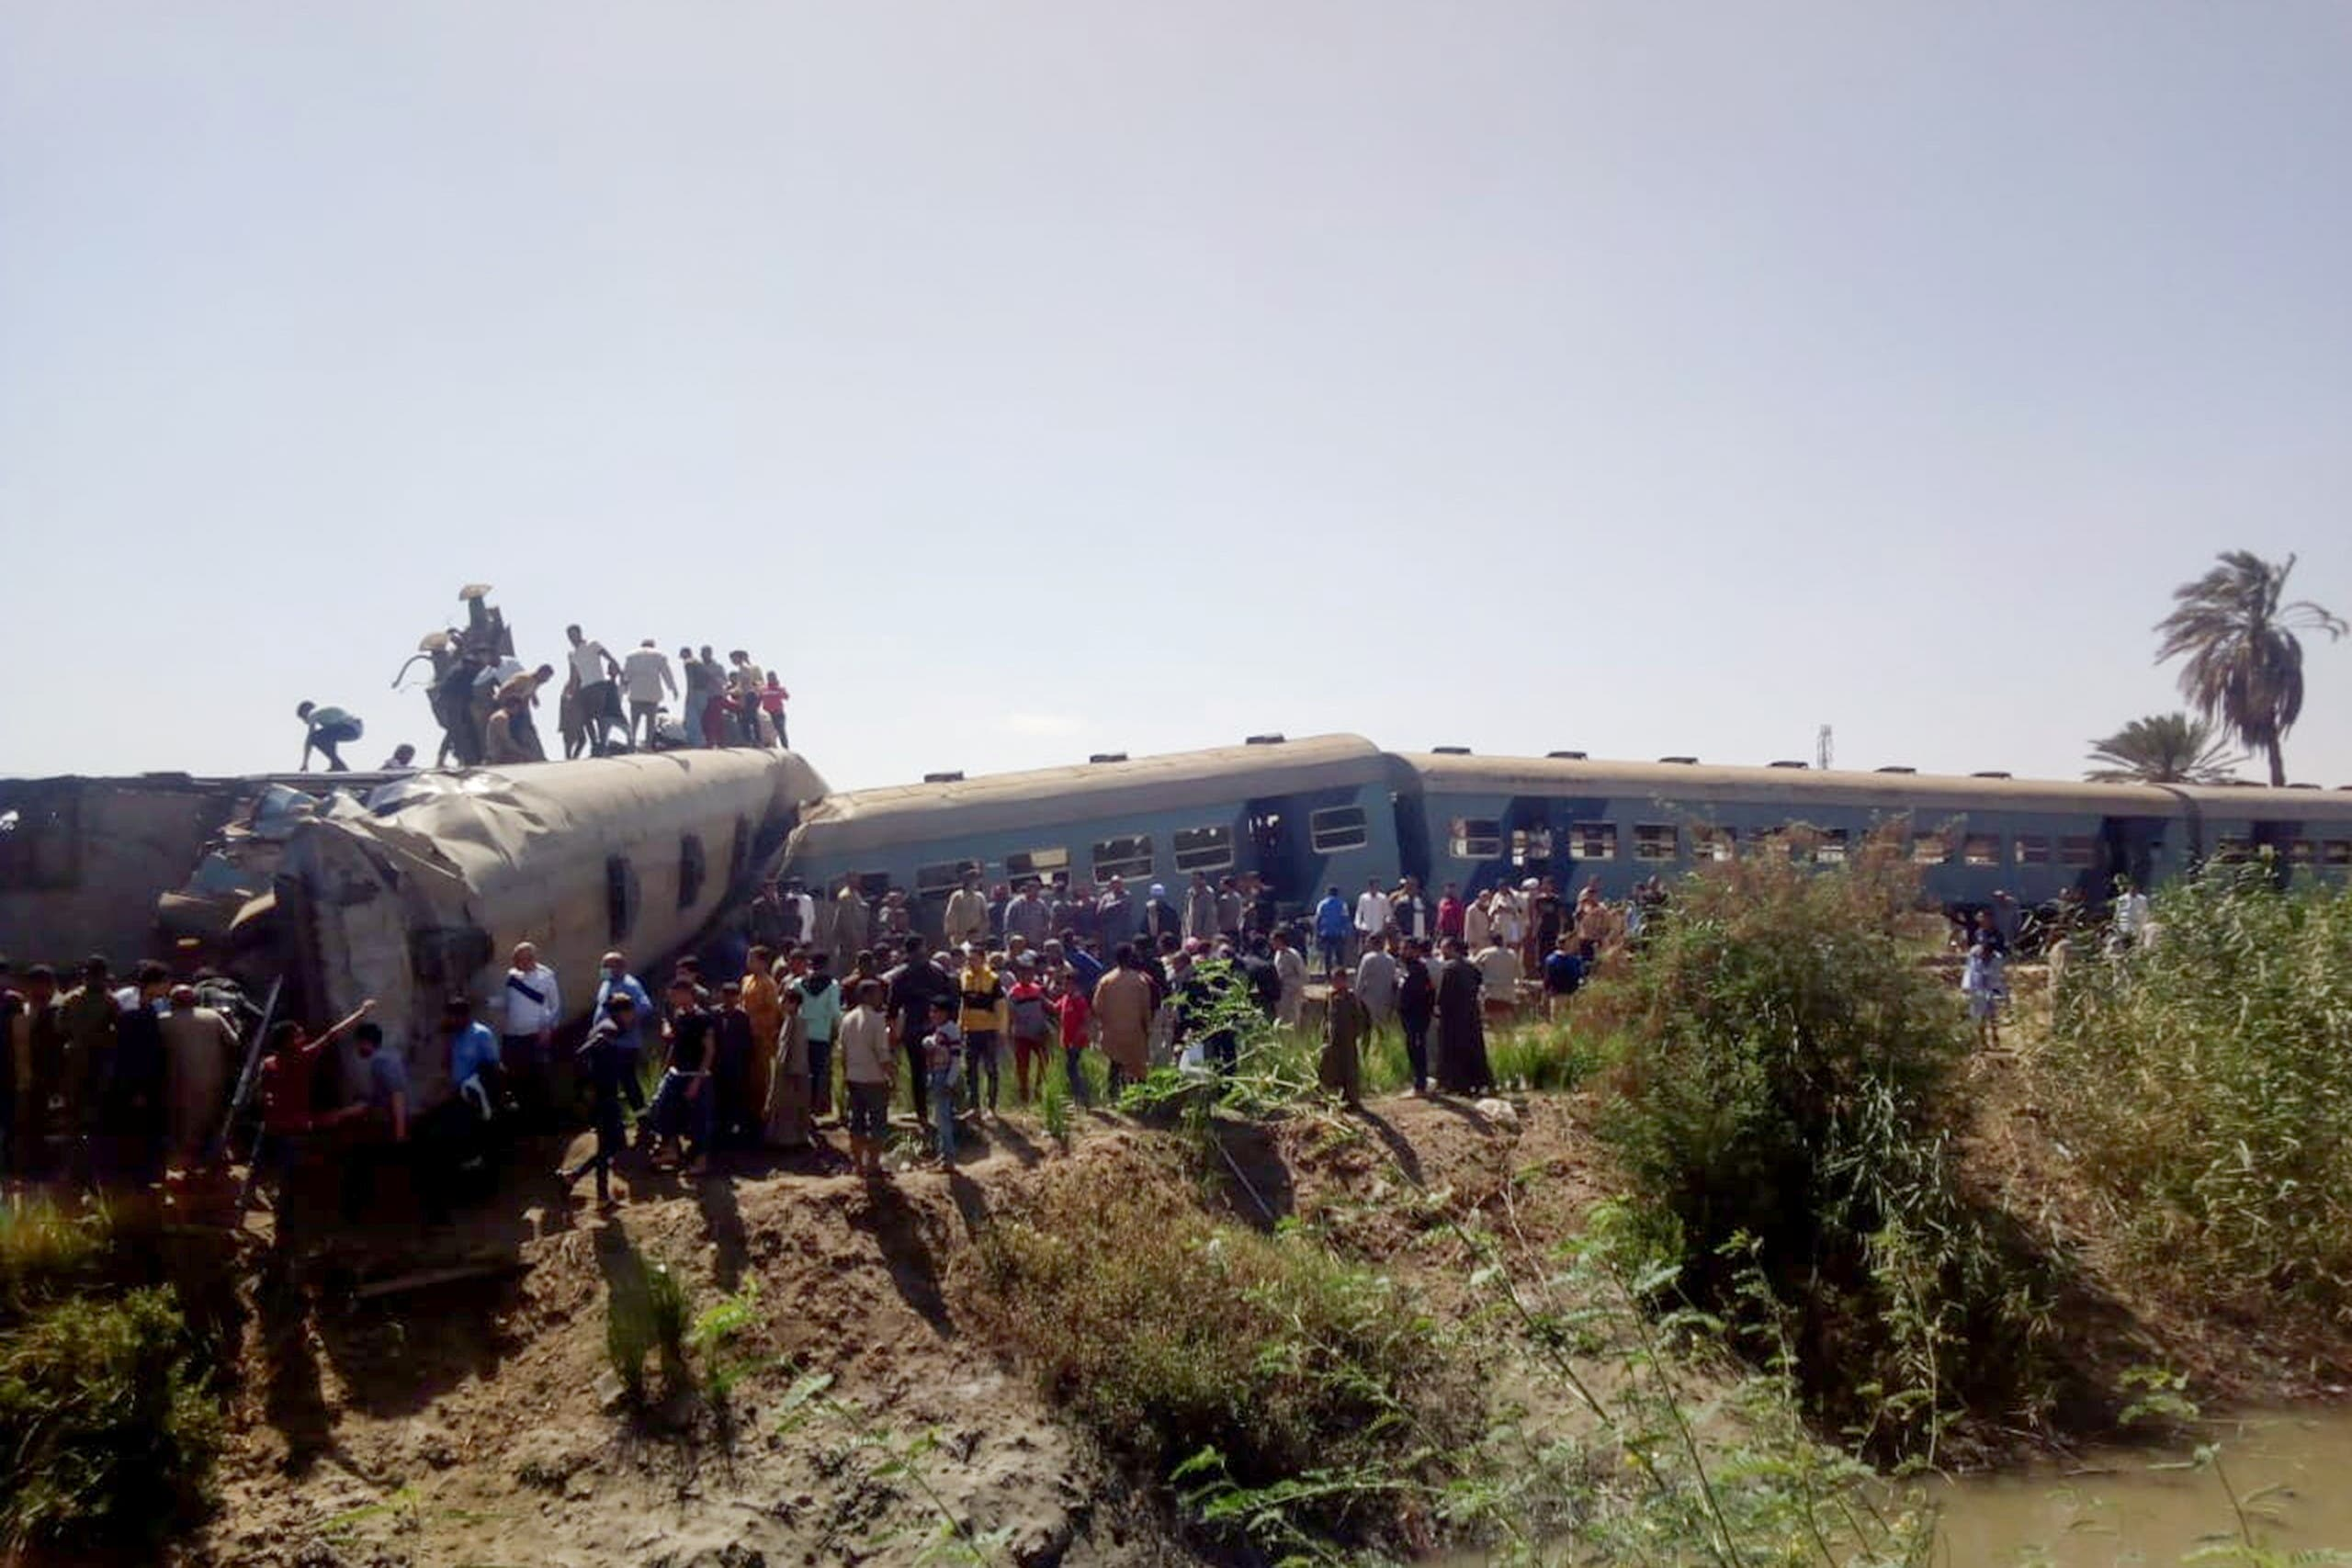 People inspect the damage after two trains have collided near the city of Sohag. (Reuters)